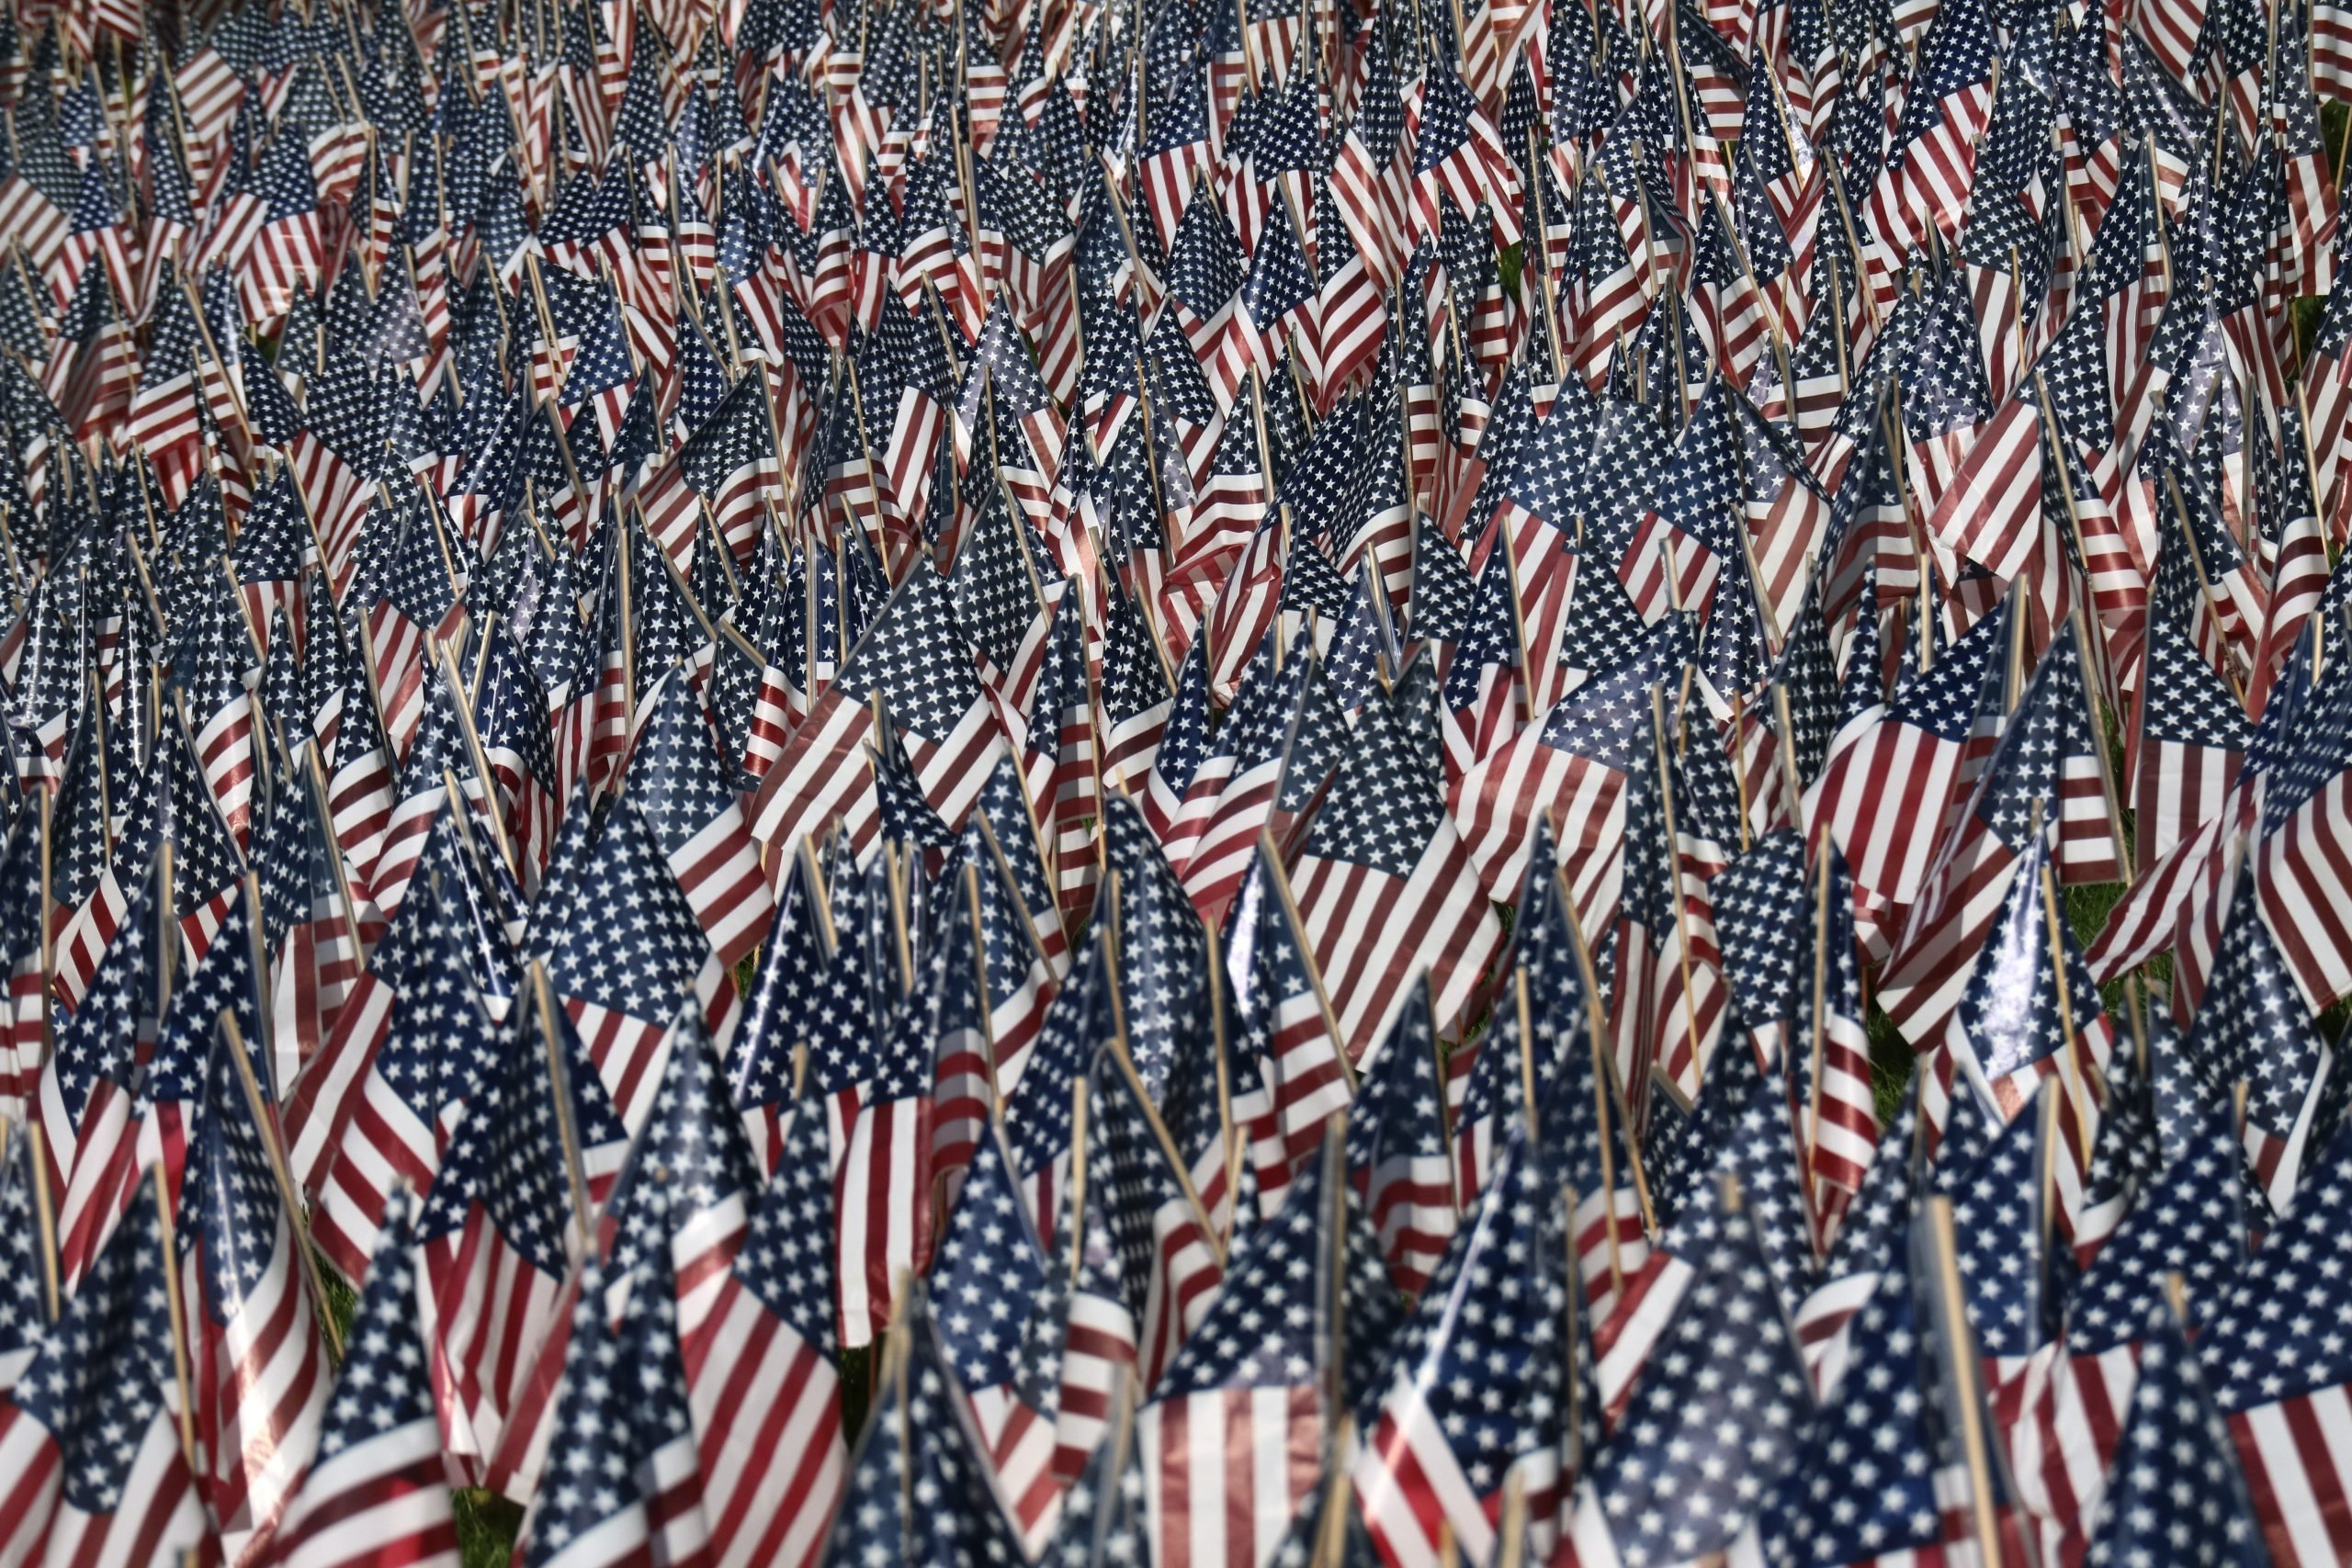 Thousands of US flags decorate the front lawn of the Fort Lee High School in advance of election day and Veterans Day on November 6, 2016 in Fort Lee, NJ.